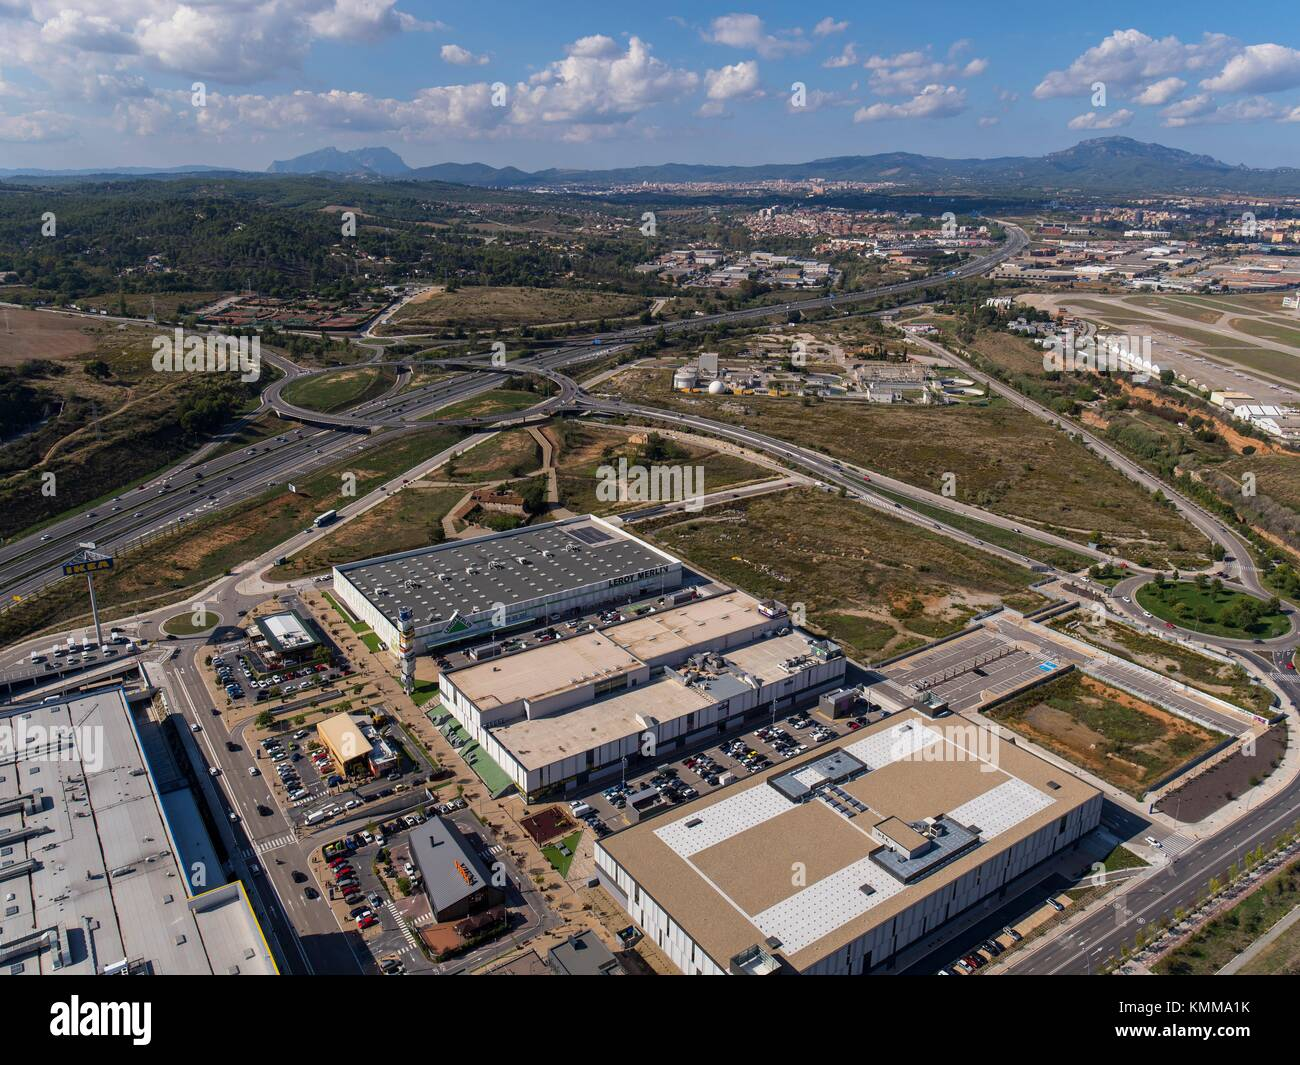 Sabaedell C 58 Highway And Commercial Center In Sabadell Barcelona Stock